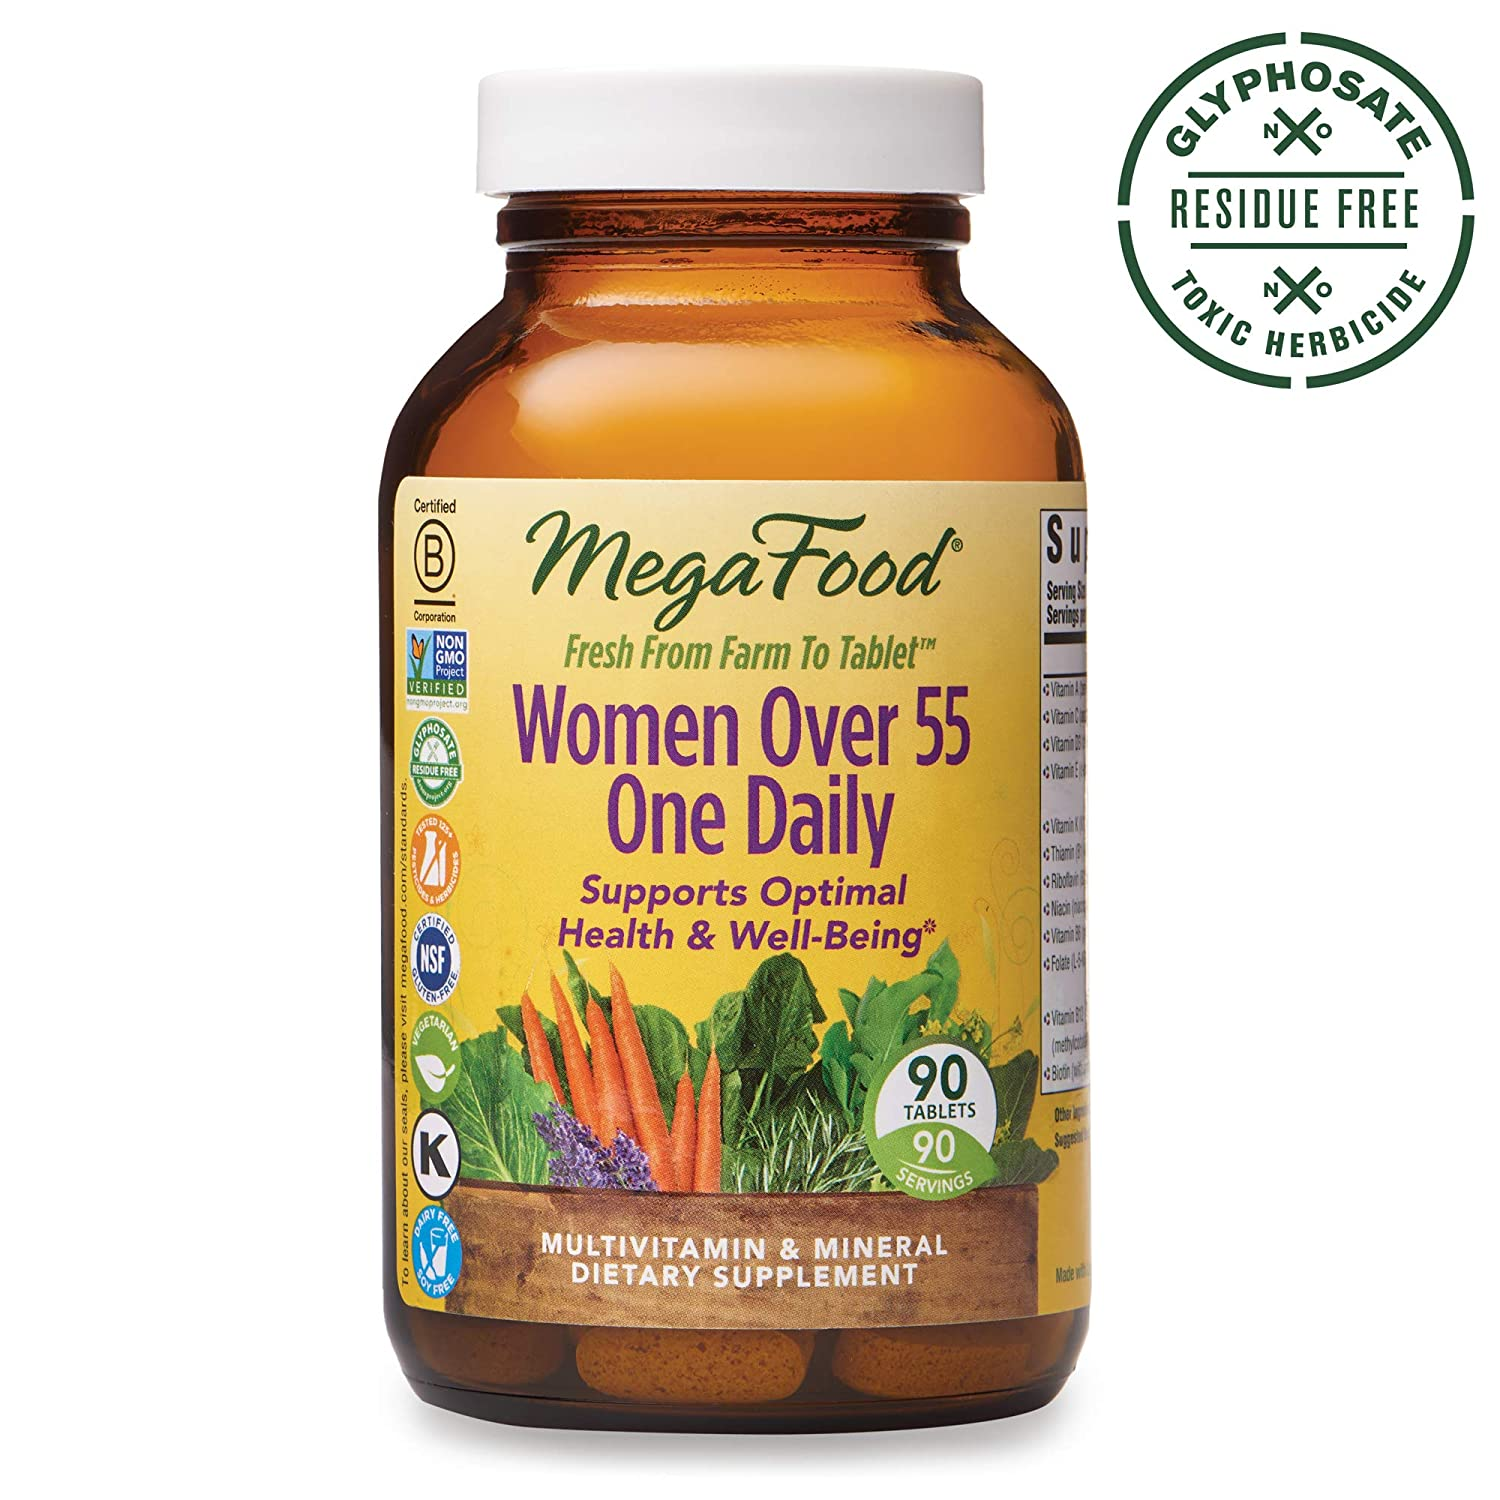 MegaFood - Women Over 55 One Daily, Multivitamin Support for Healthy Energy Production and Strong Bones with Vitamins C and D3, and Methylated Folate, Vegetarian, Gluten-Free, Non-GMO, 90 Tablet